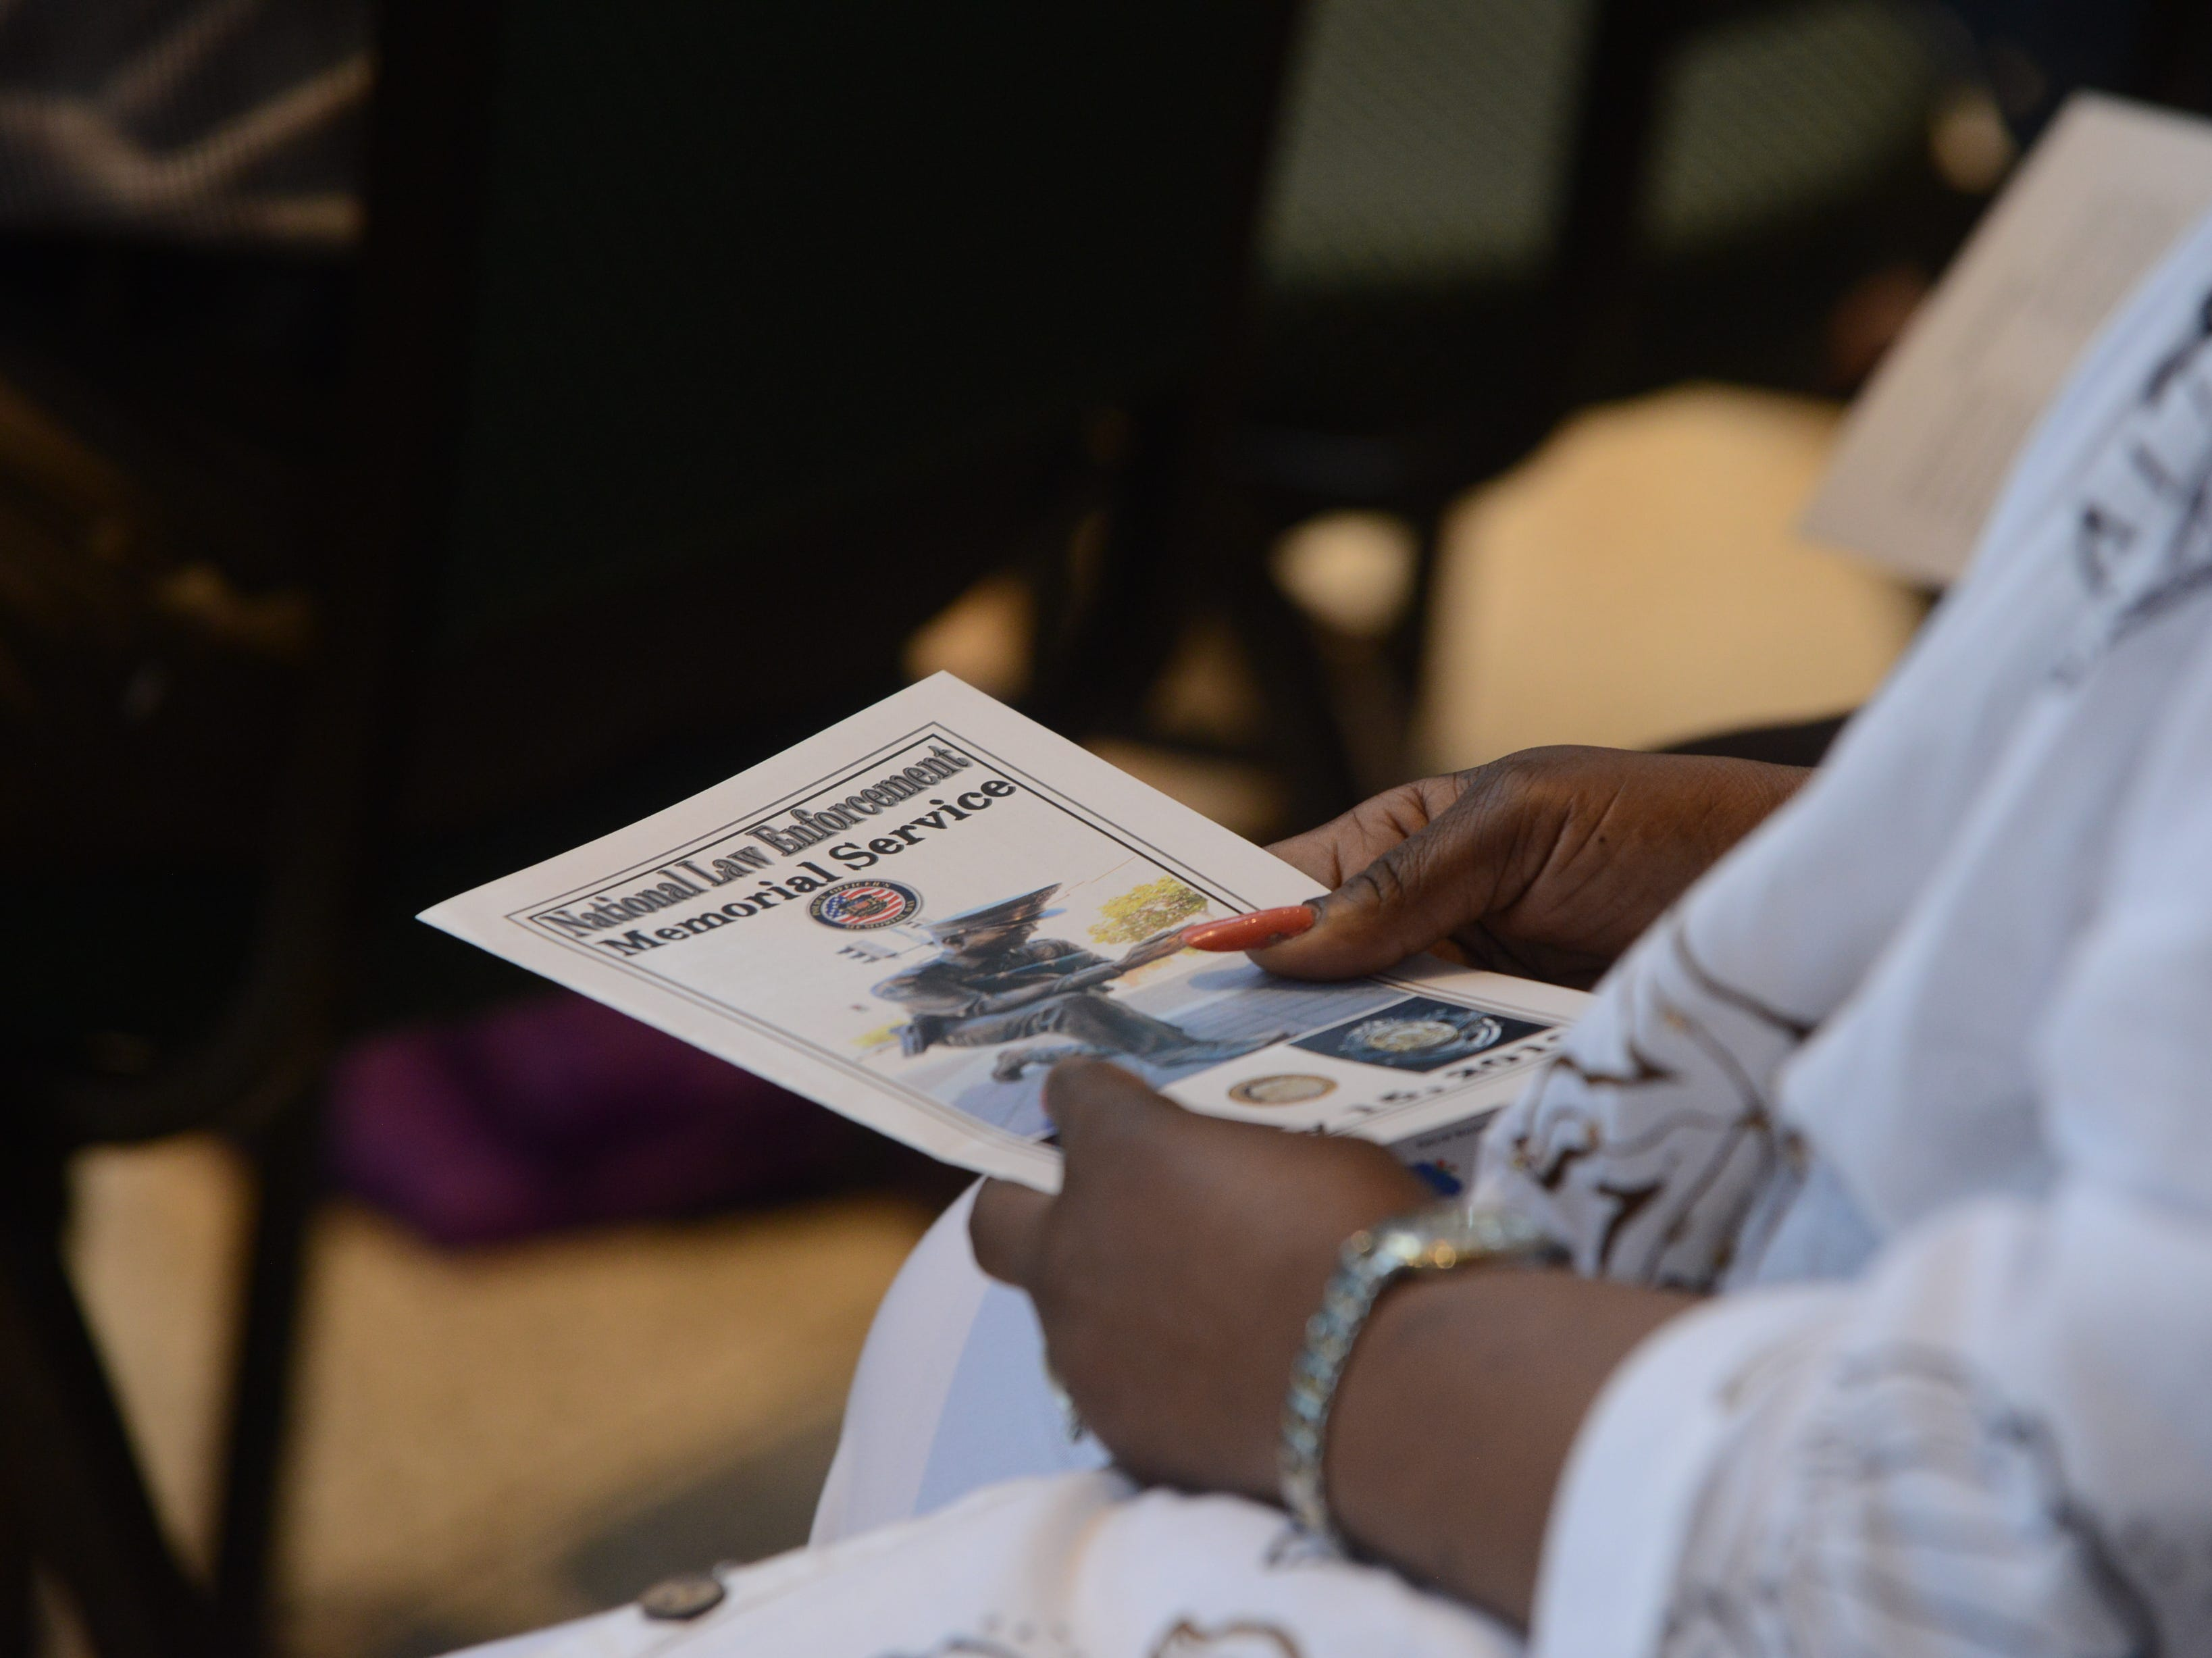 Francis Walker holds the program for the National Law Enforcement Memorial Service at the Carl Perkins Civic Center in Jackson on Wednesday, May 15, 2019. Walker came to honor her niece, Kay Francis Rogers, an officer with the Murfreesboro Police Department who lost her life in 2005.